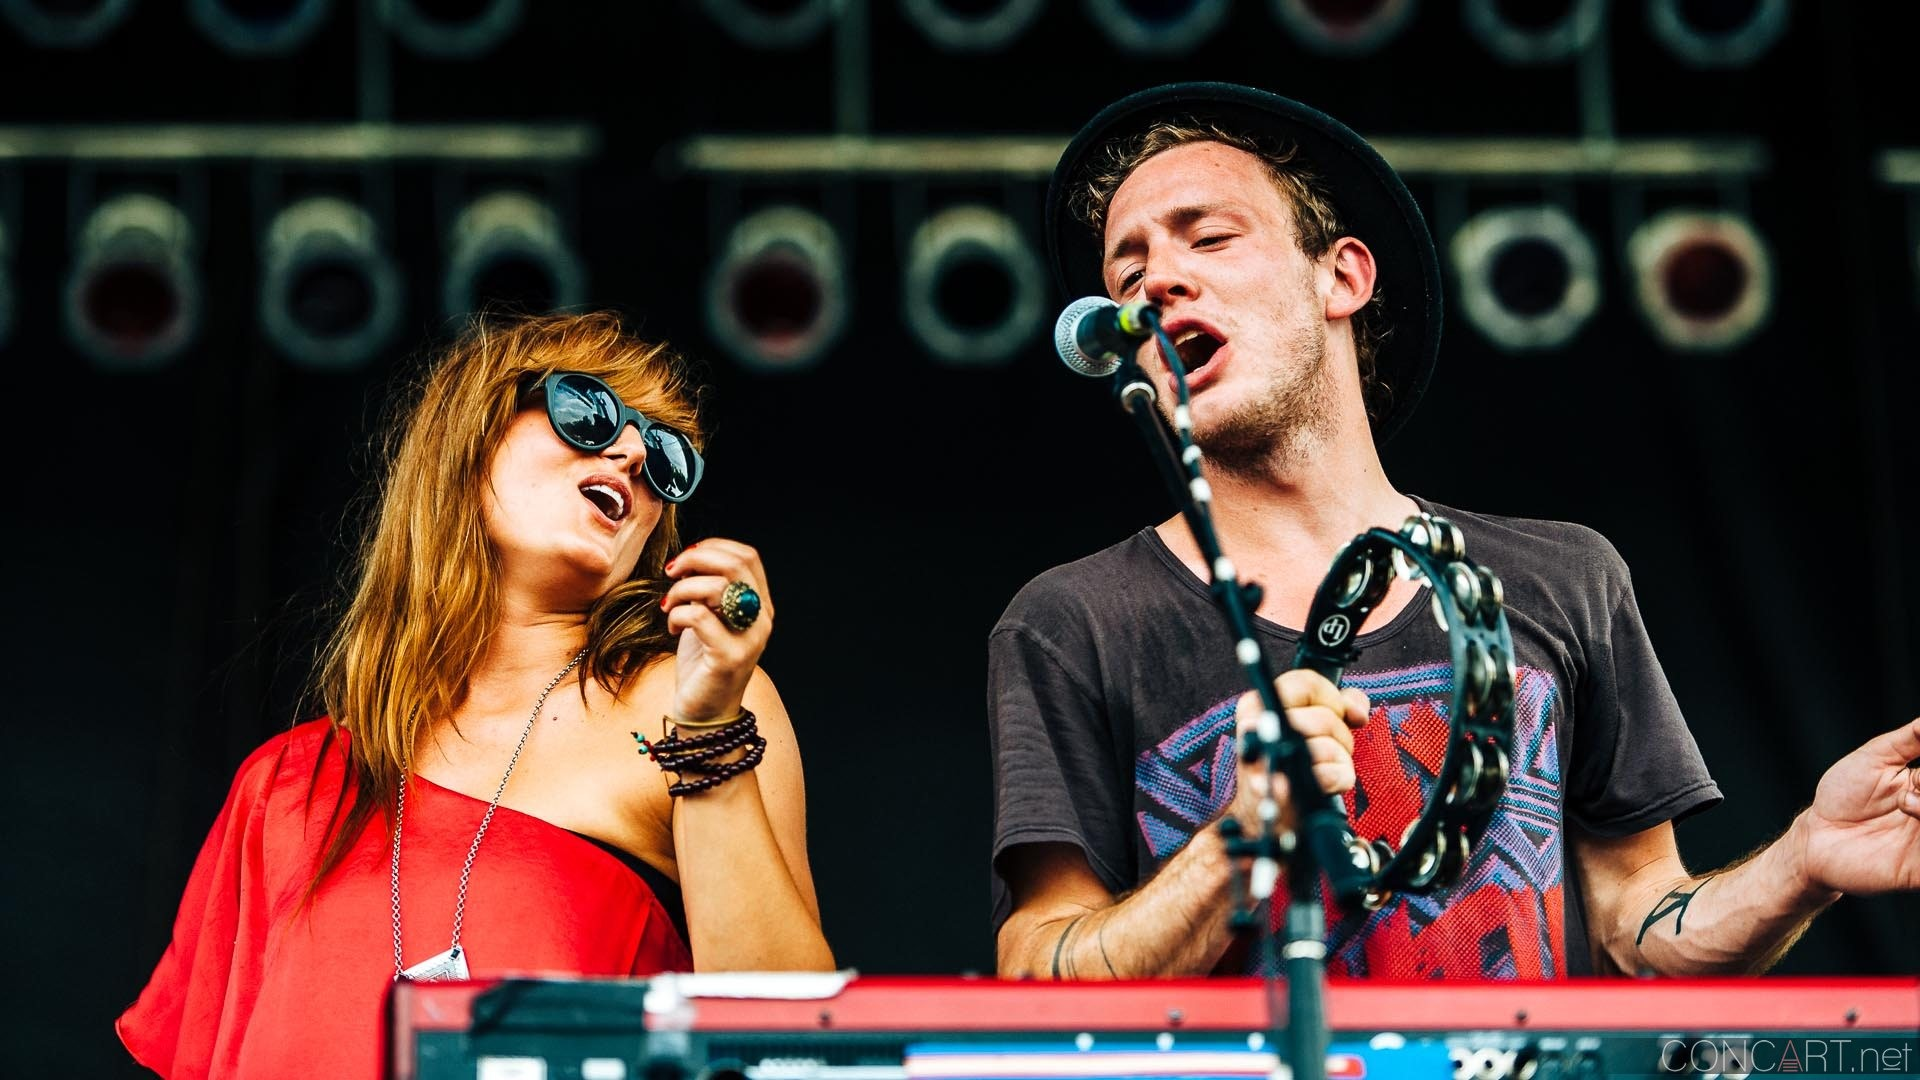 kopecky_family_band_live_warmfest_broad_ripple_indianapolis_2013-26